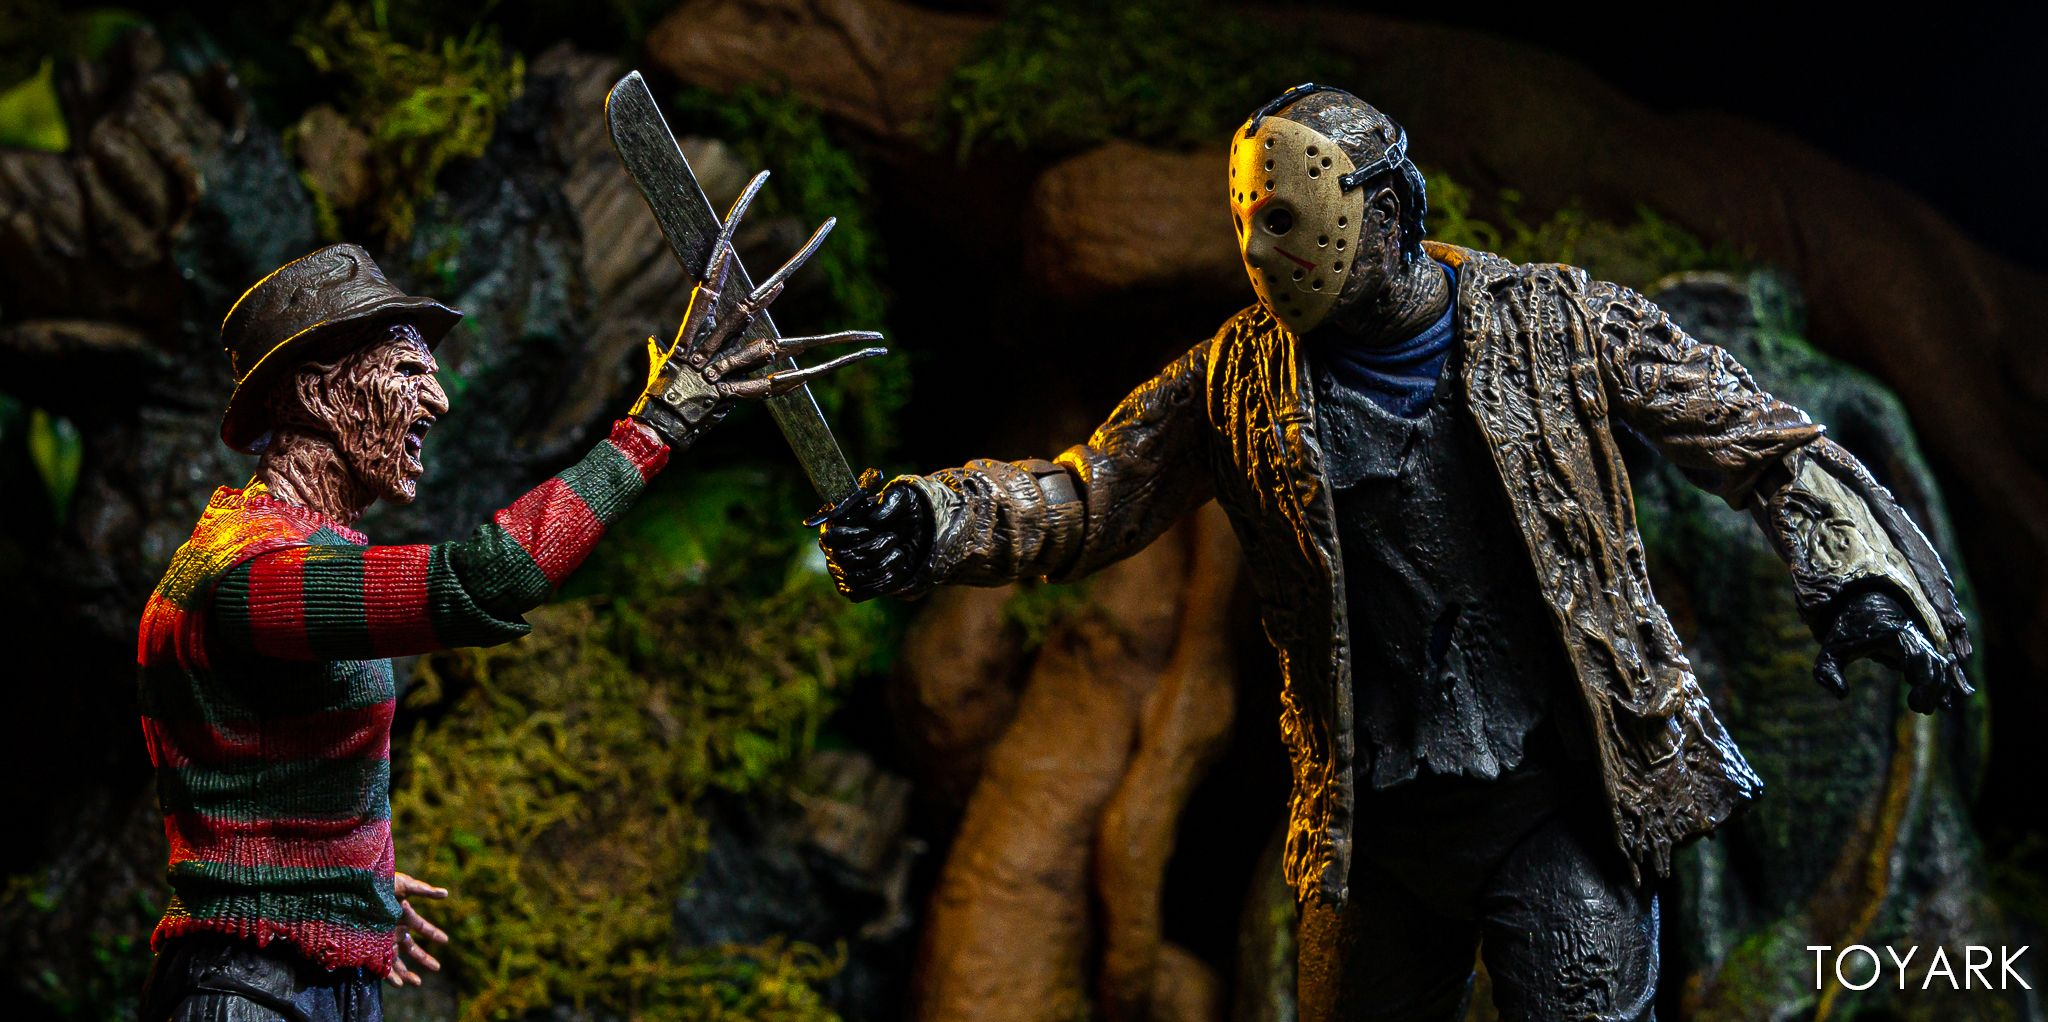 https://news.toyark.com/wp-content/uploads/sites/4/2019/07/FvJ-Jason-Voorhees-NECA-036.jpg